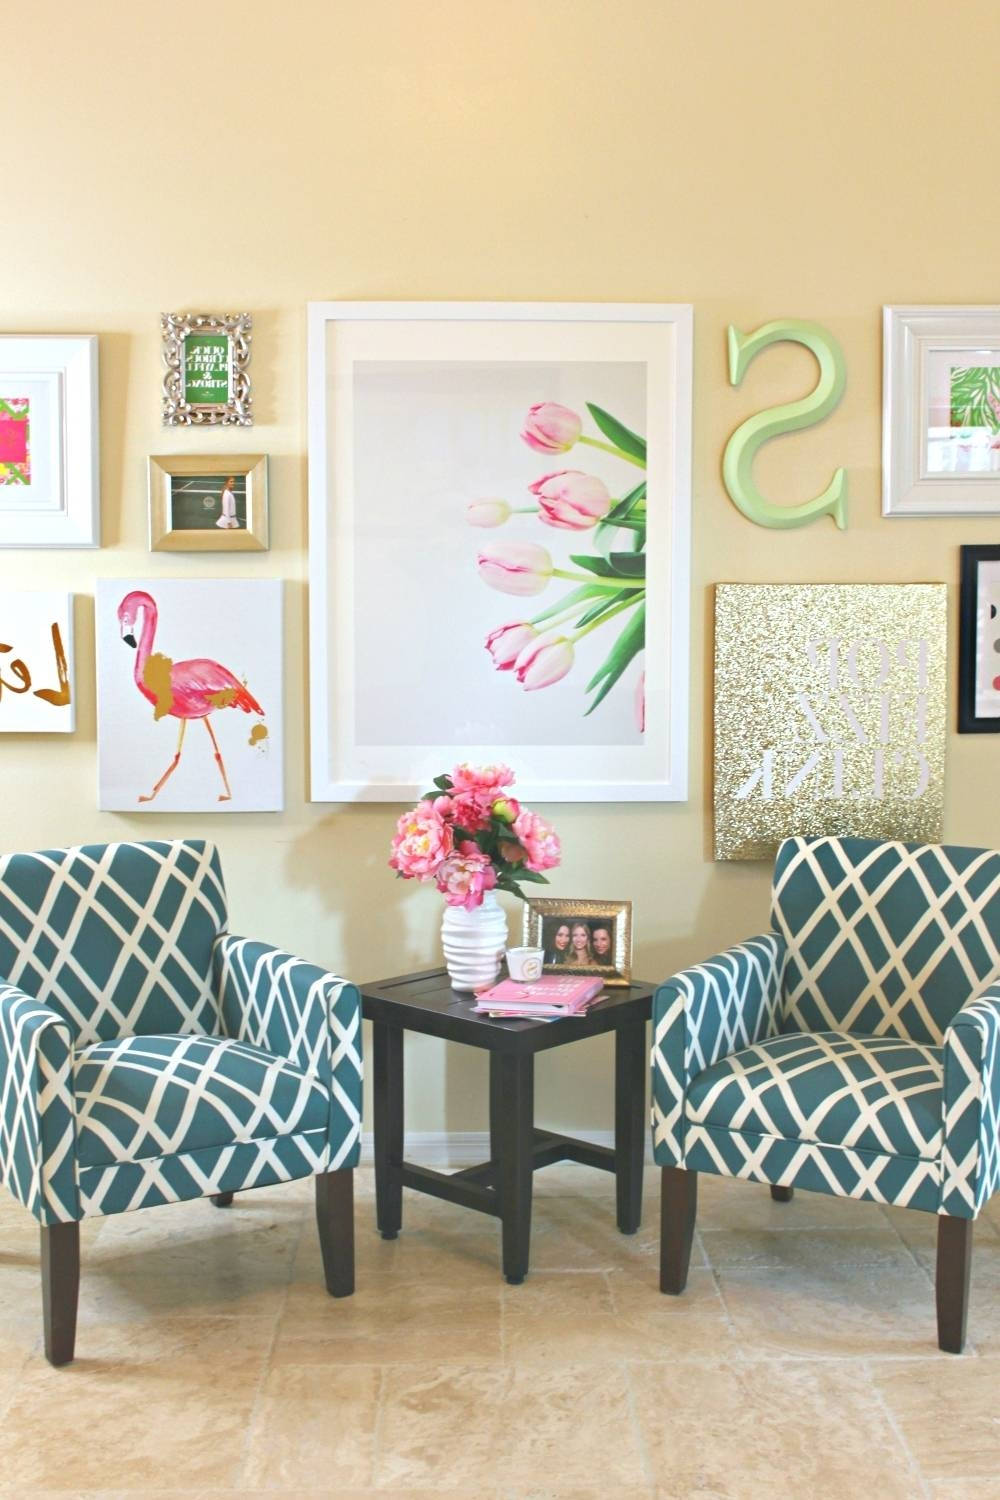 Home Design : 81 Amazing Wall Art For Living Rooms With 2017 Vibrant Wall Art (View 13 of 20)